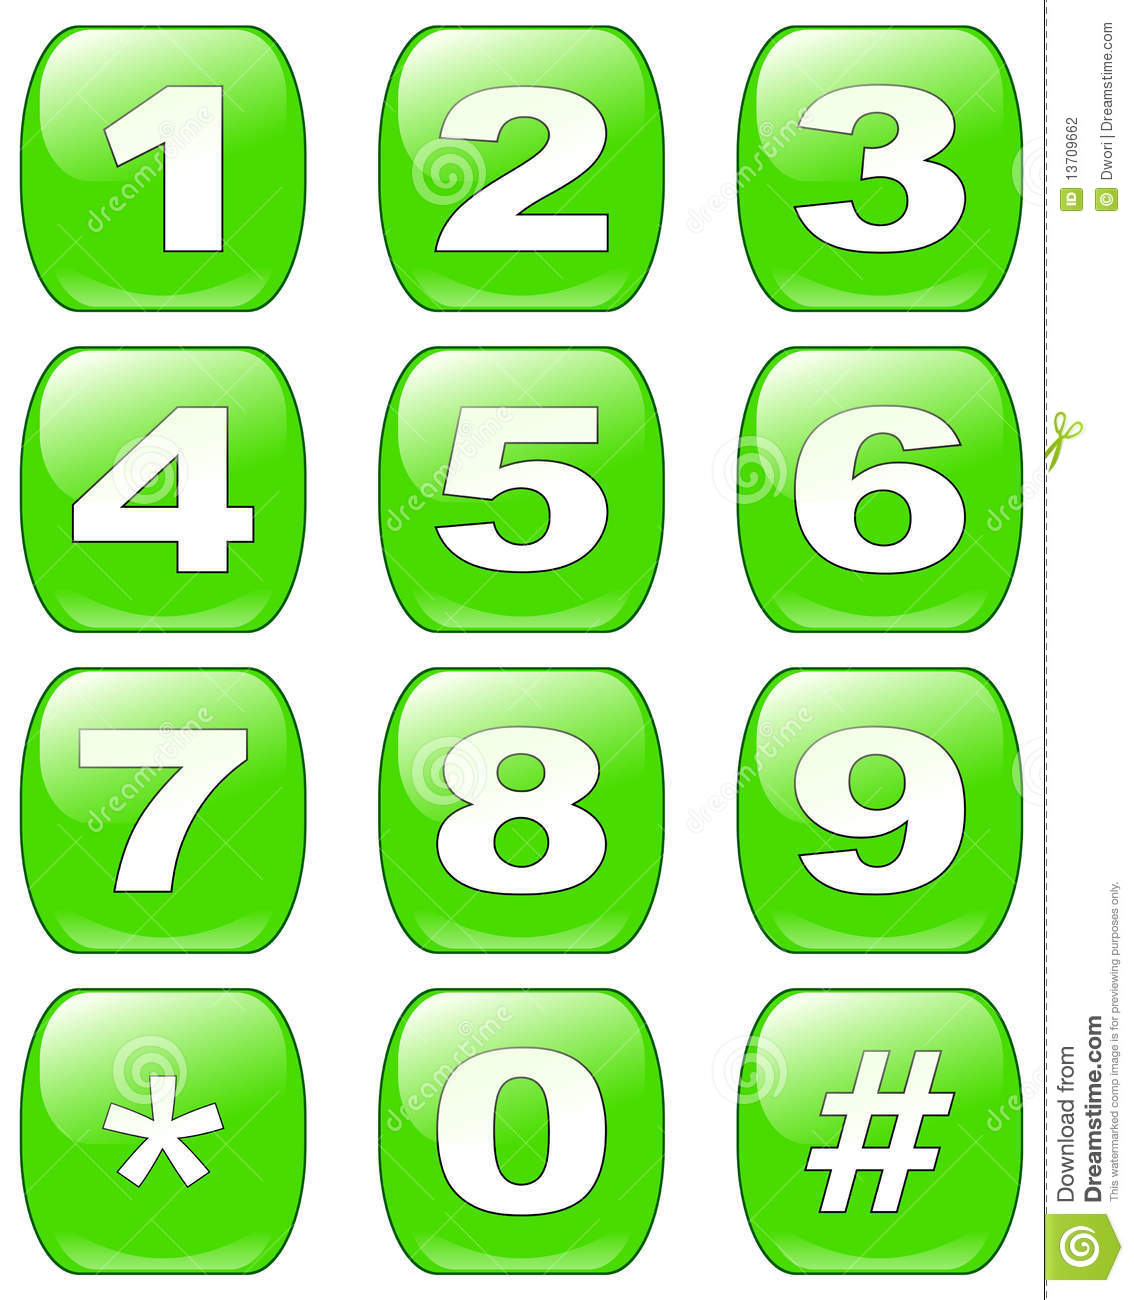 united states mobile numbers